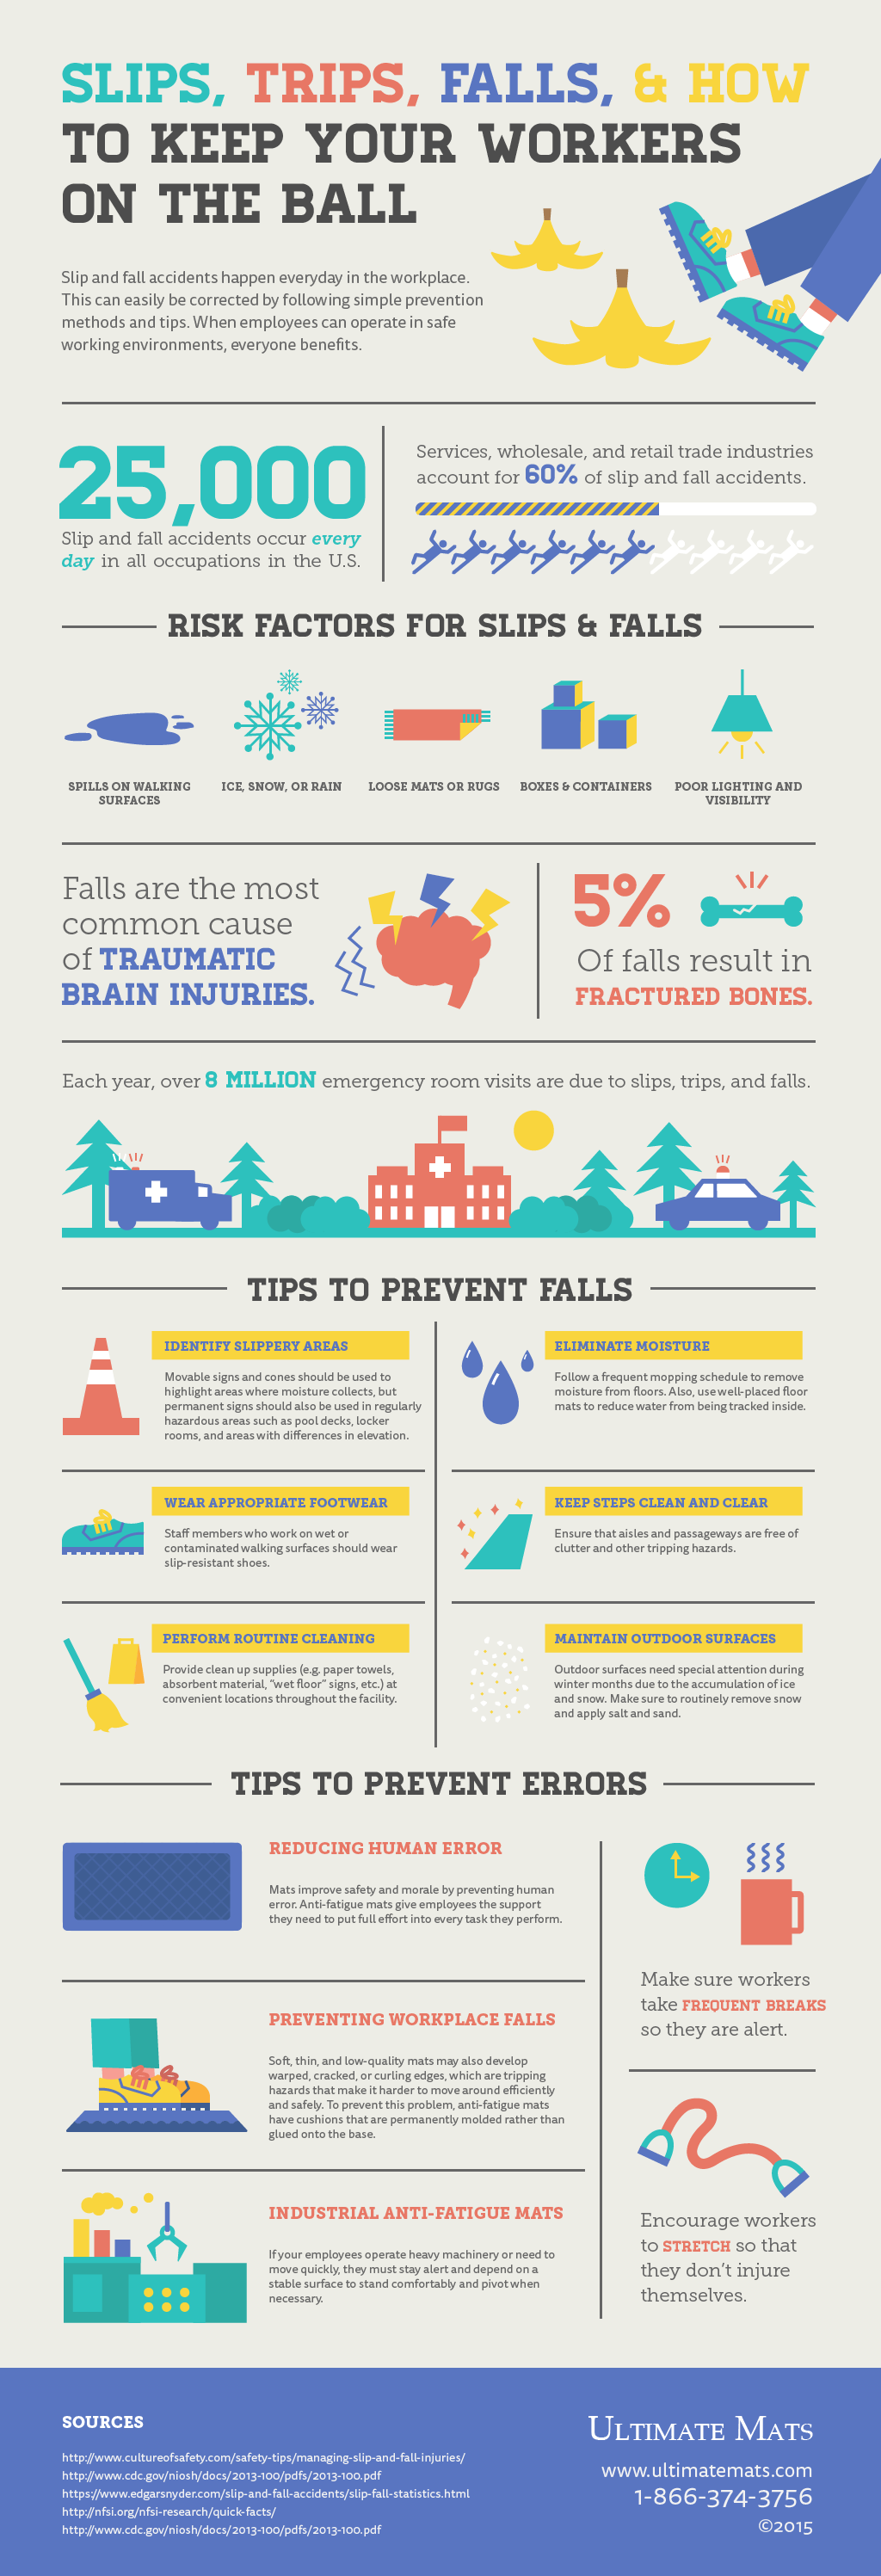 Slips, Trips, Falls and How to Keep Your Workers on the Ball #infographic